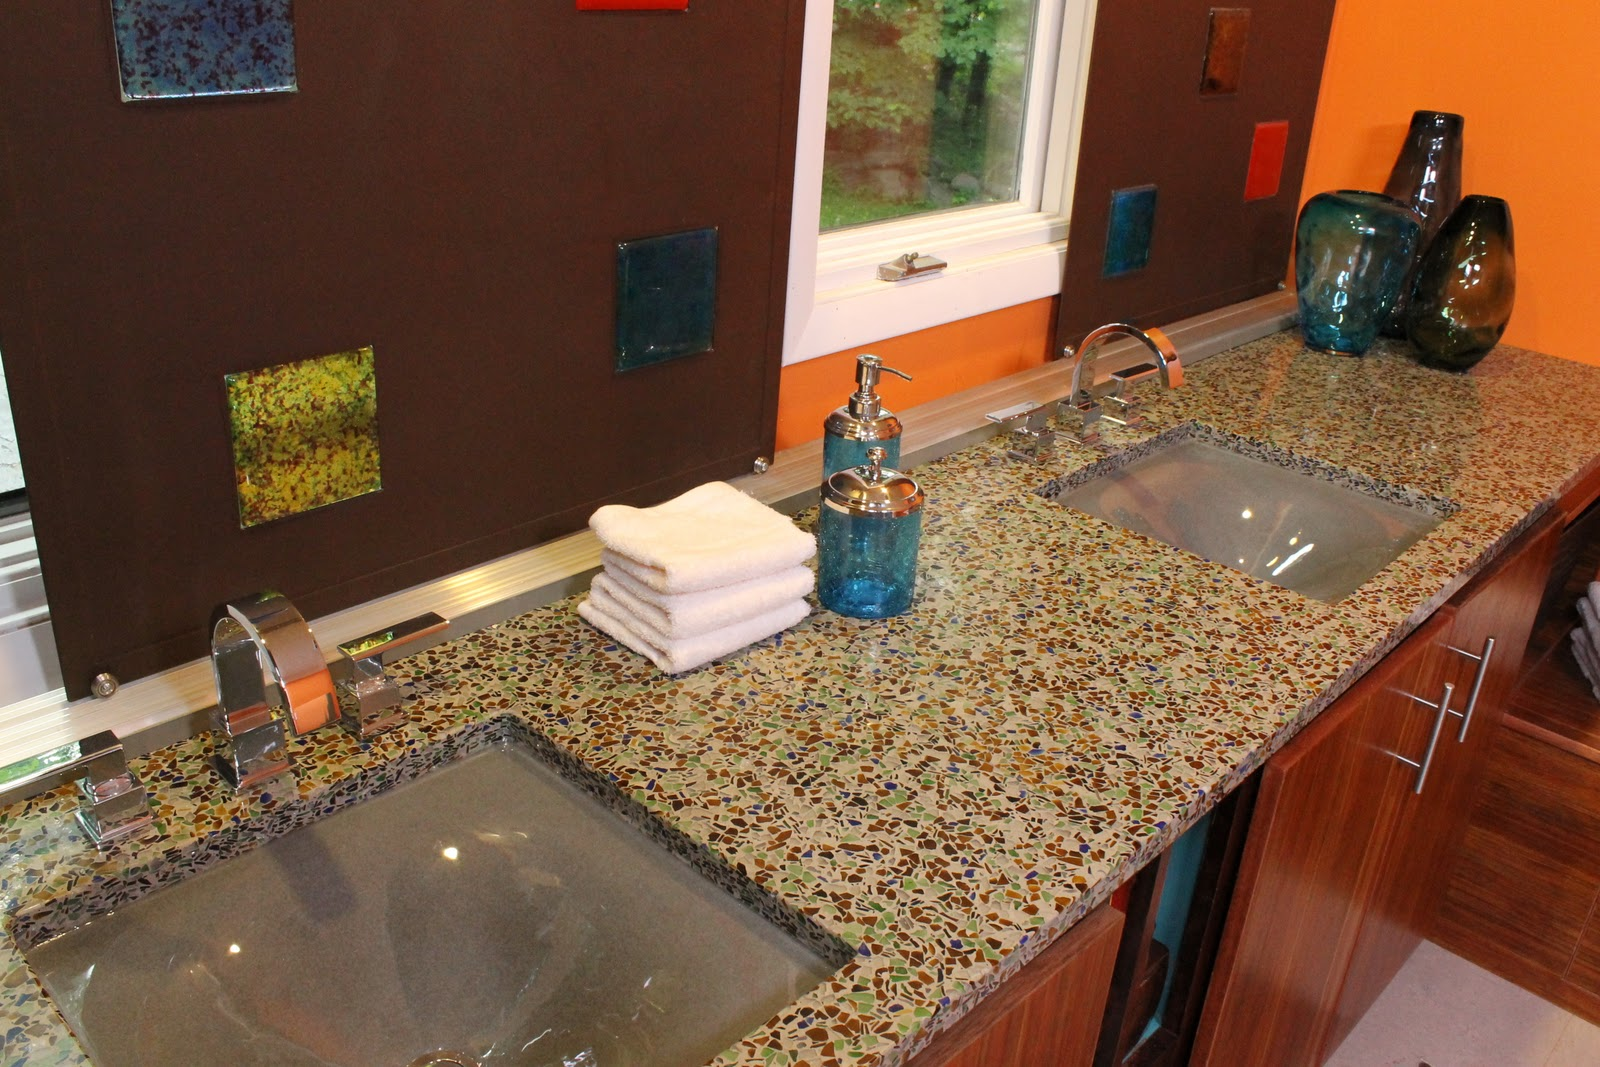 Recycled Glass Kitchen Countertops Gold Sink Just Cool For The Home